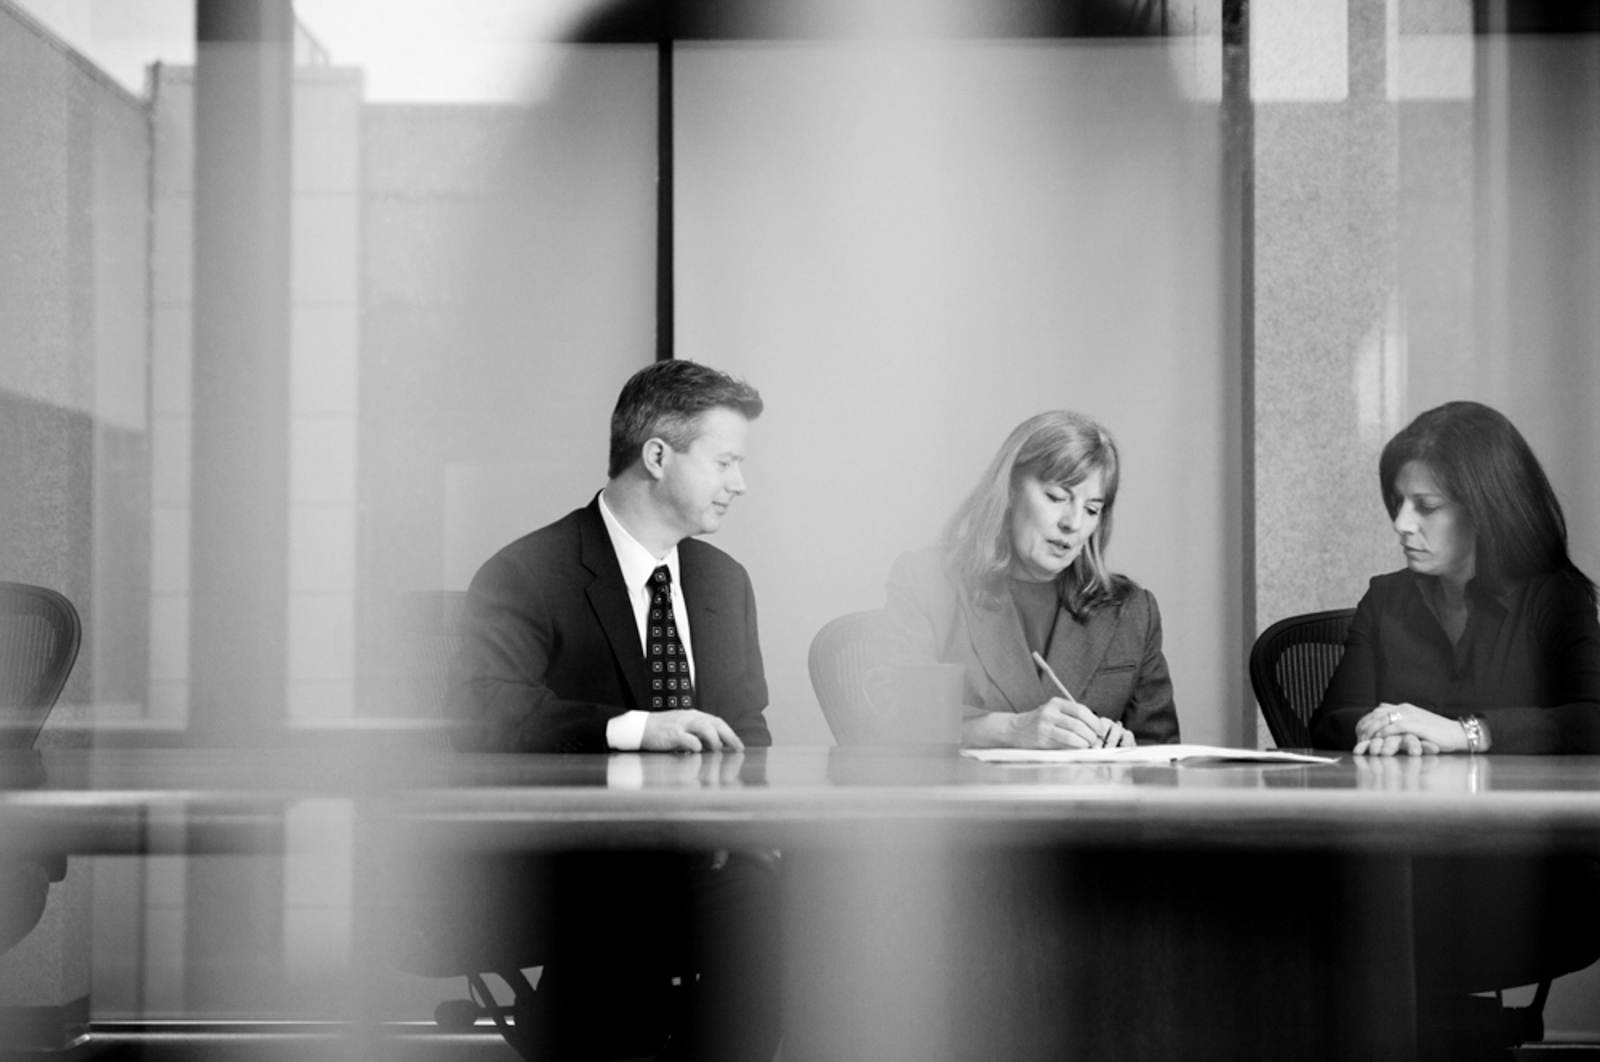 Two women and one man having a business meeting, seen through a glass door